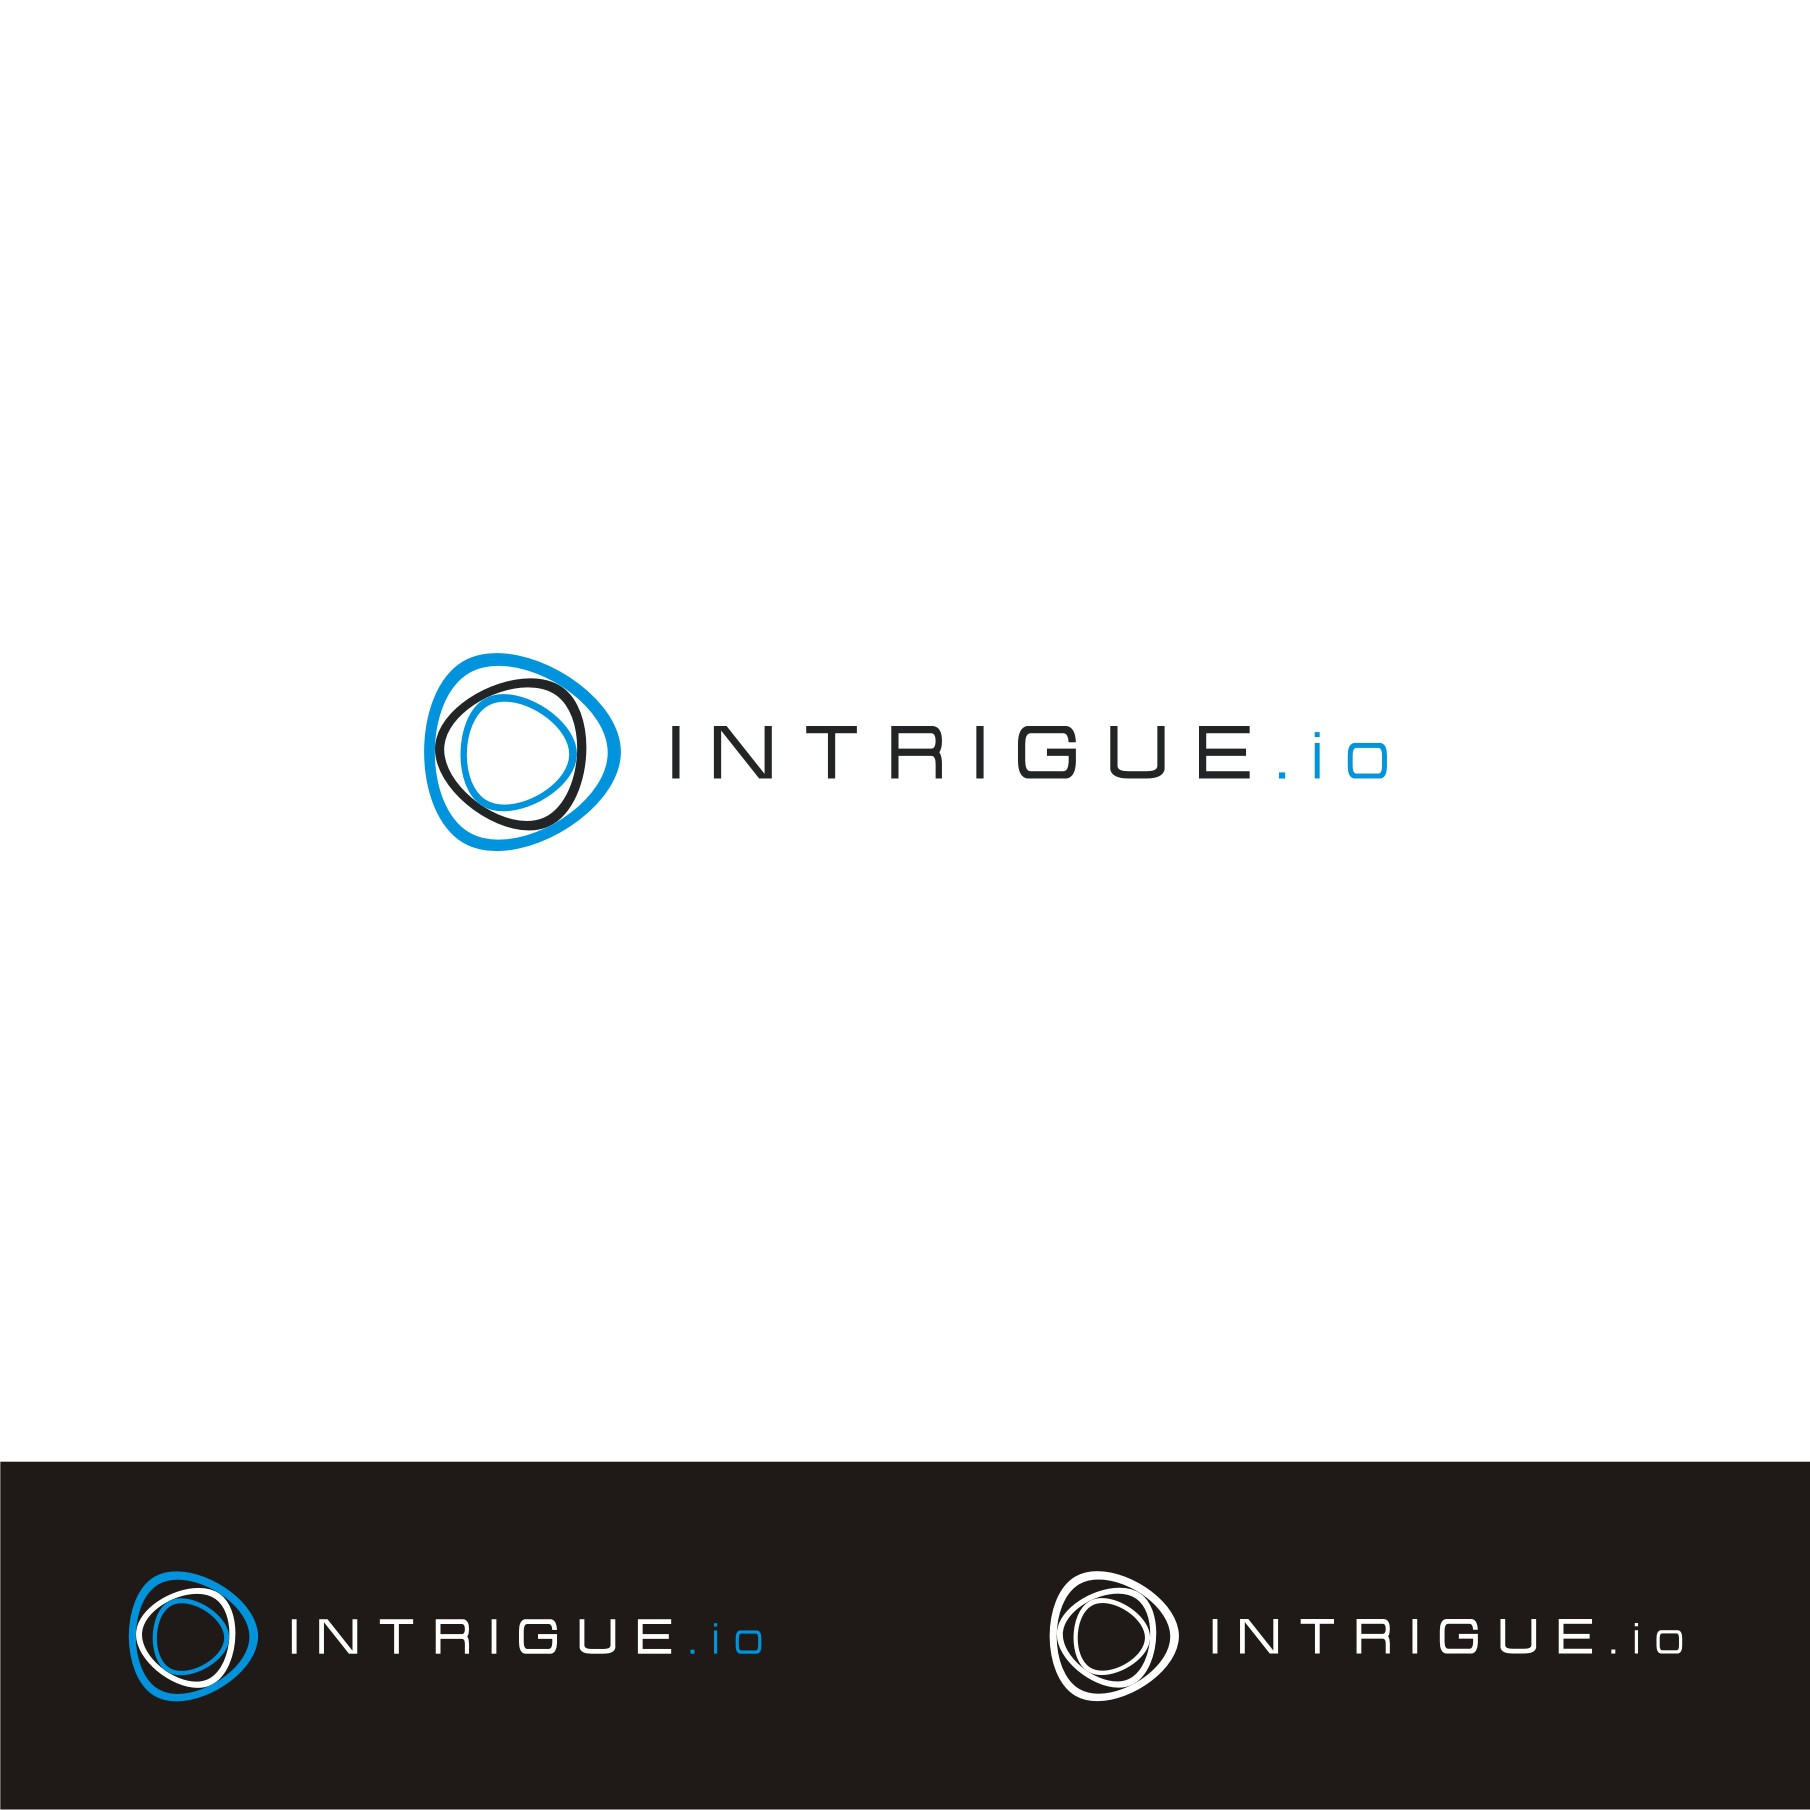 Intrigue.io